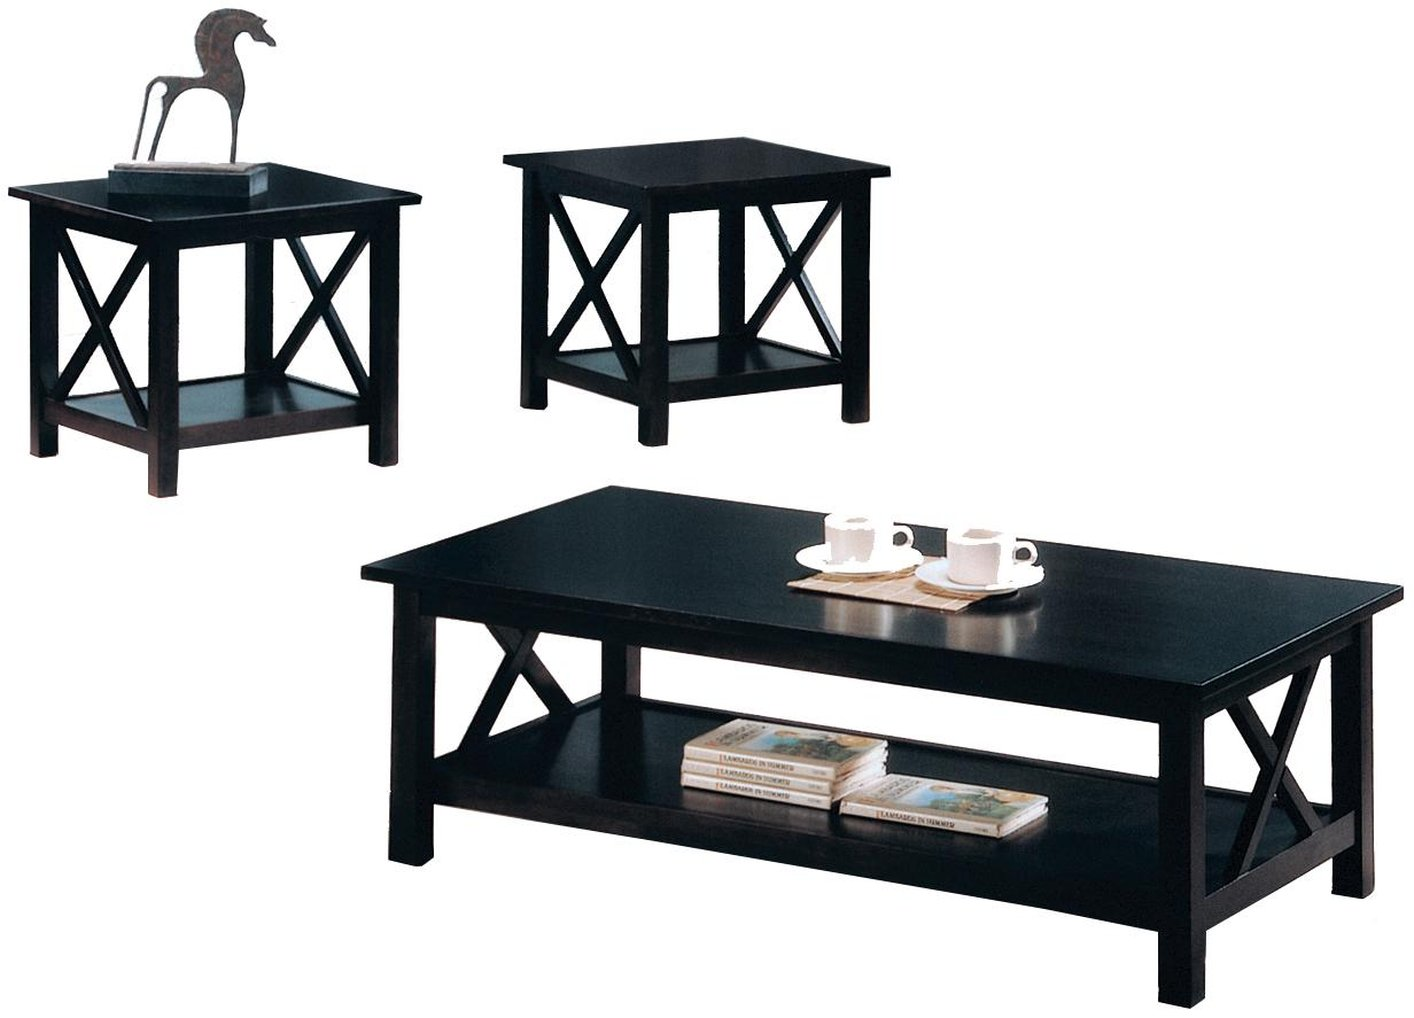 Coaster 5909 black wood coffee table set steal a sofa furniture outlet los angeles ca Dark wood coffee tables